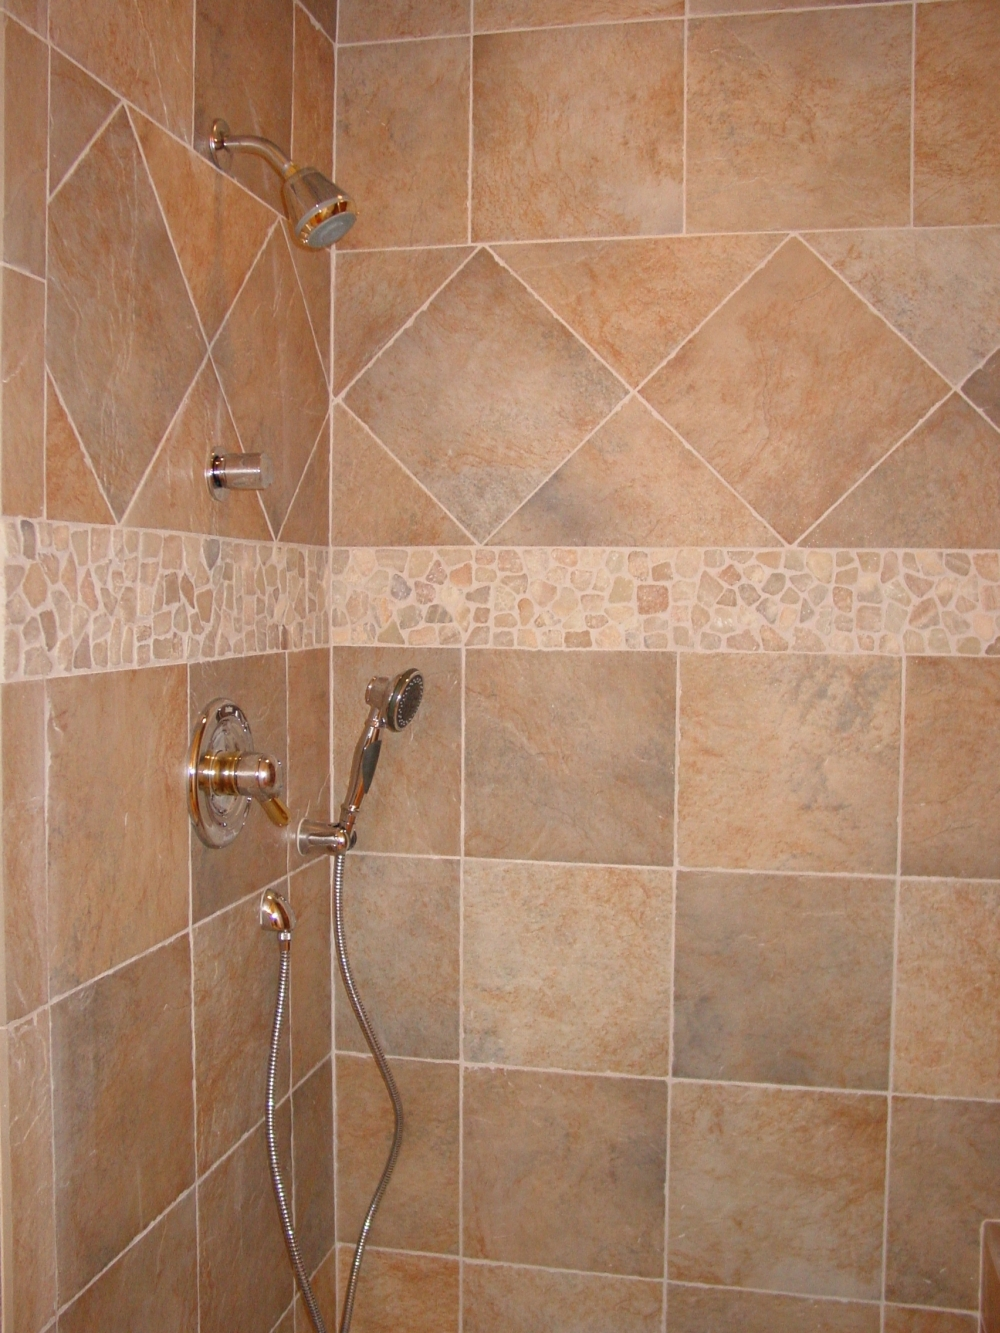 Pebble shower floors for tiled showers how to install small border made from sawn stones dailygadgetfo Choice Image